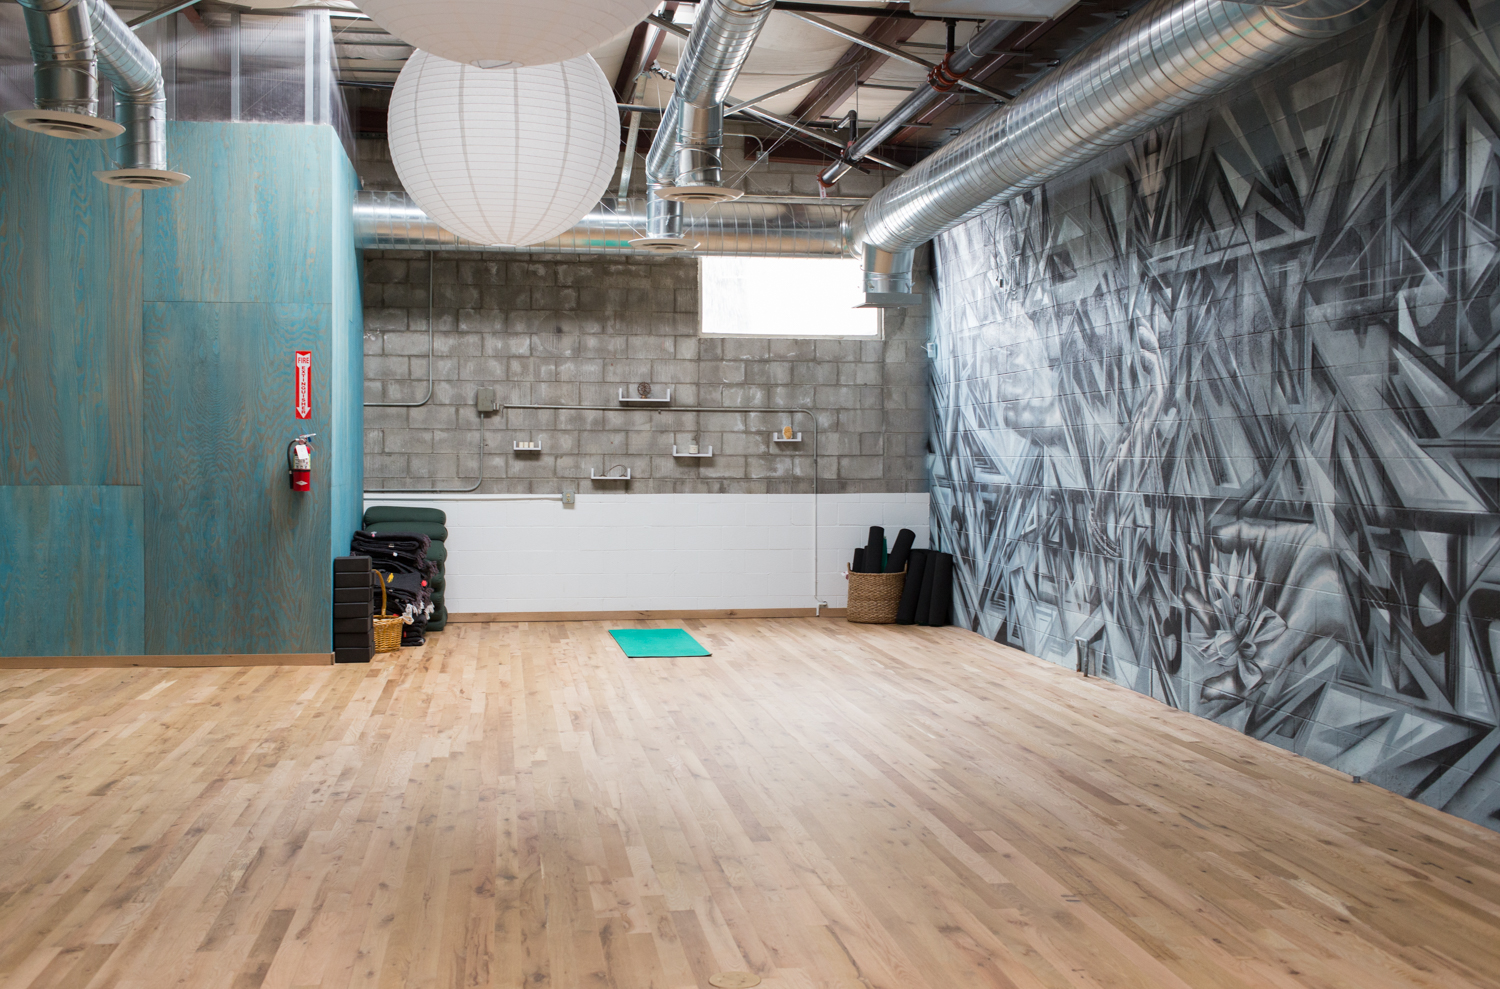 Yoga studio with mural by LA artist Angelina Christina.